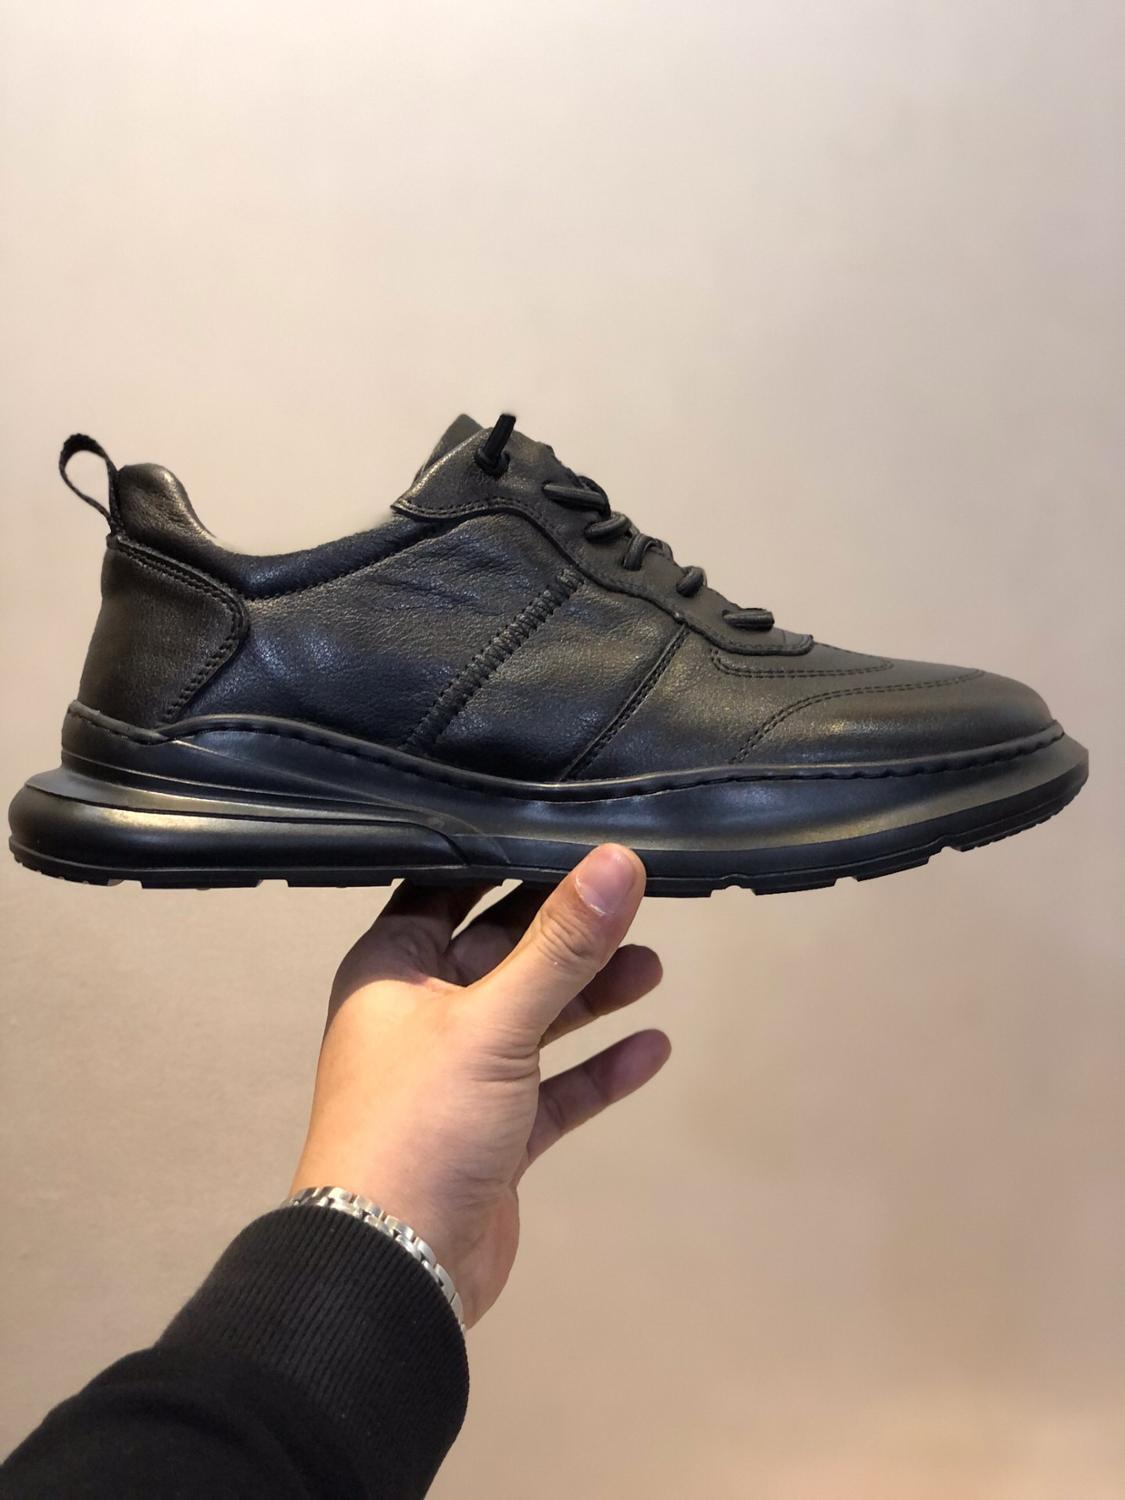 Ecco Fall Winter New Men Leather Shoes New Oxygen Fitness Men's Shoes Work Shoes Men's Casual Shoes 39-44